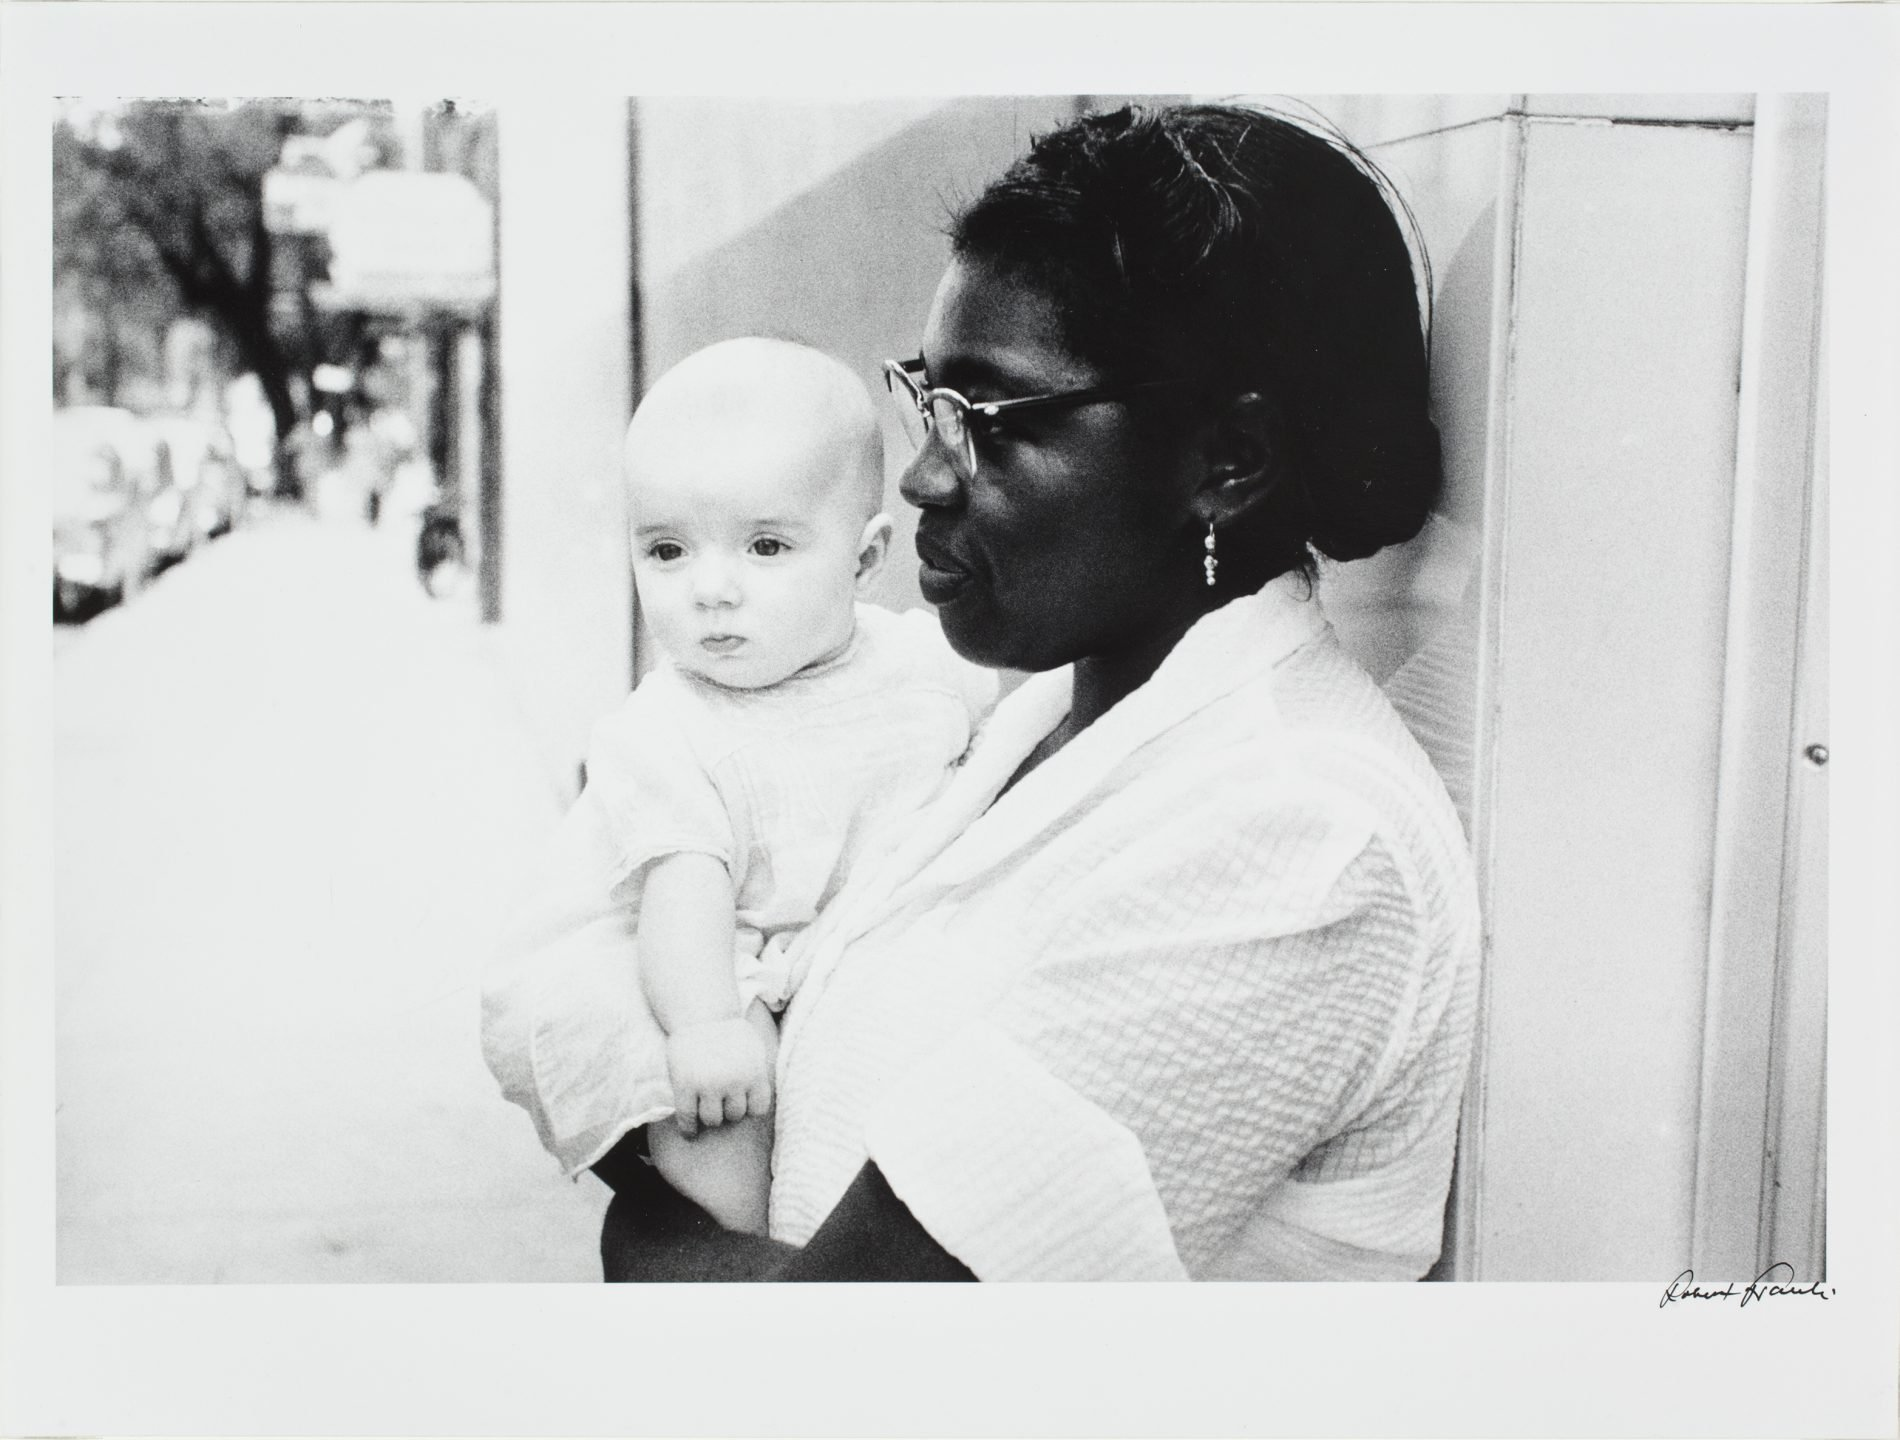 Robert Frank 'Charleston, South Carolina' from 'The Americans,' neg. 1955 – 56, print, 1989. Gelatin silver print. Museum purchase, 1989.77.13